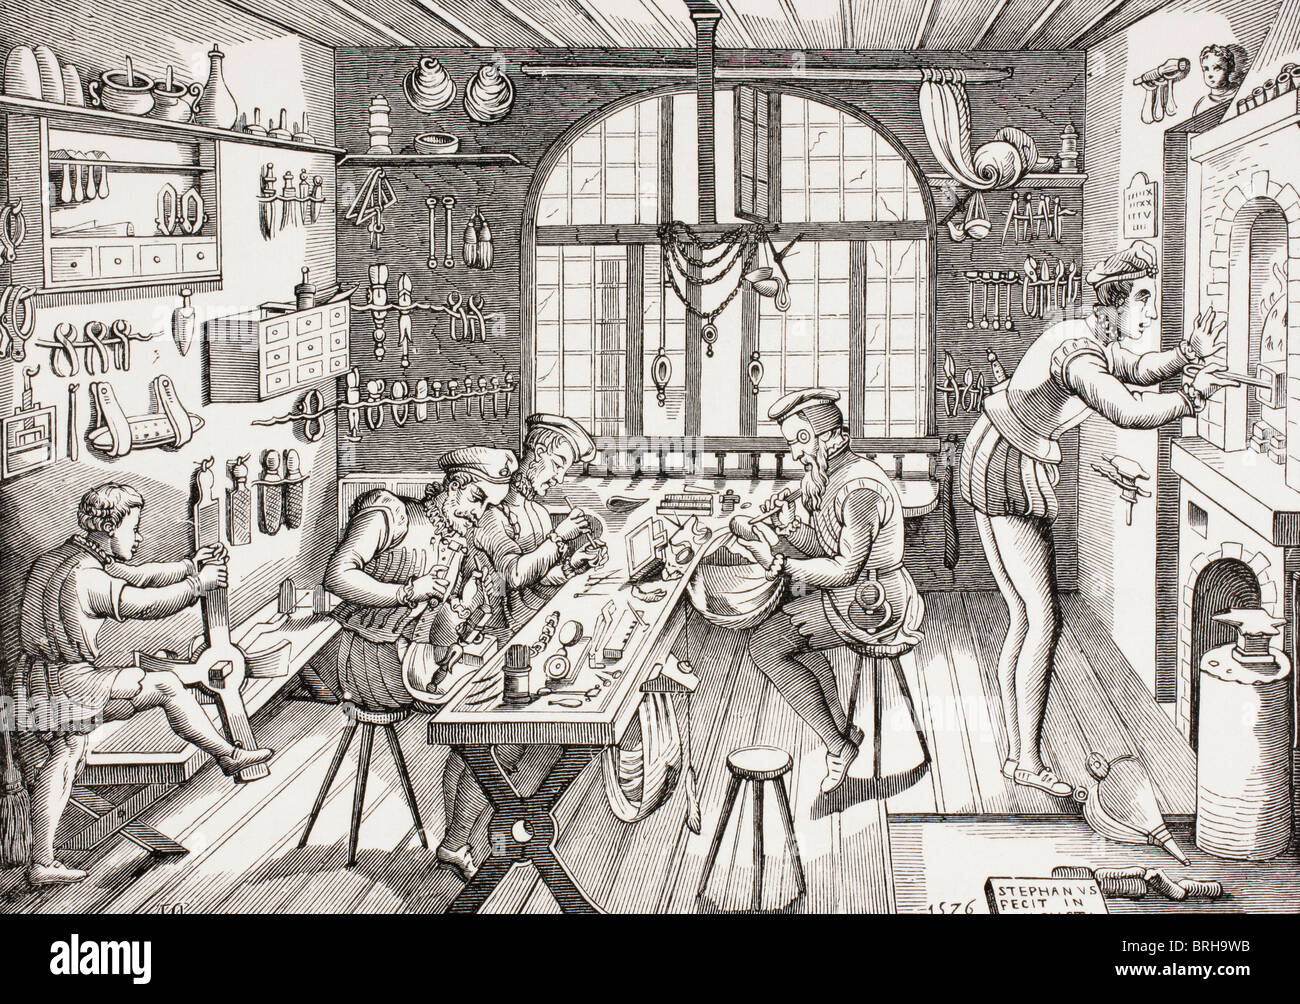 Étienne Delaune, French goldsmith, c. 1519-1583. Interior of his workshop. Stock Photo